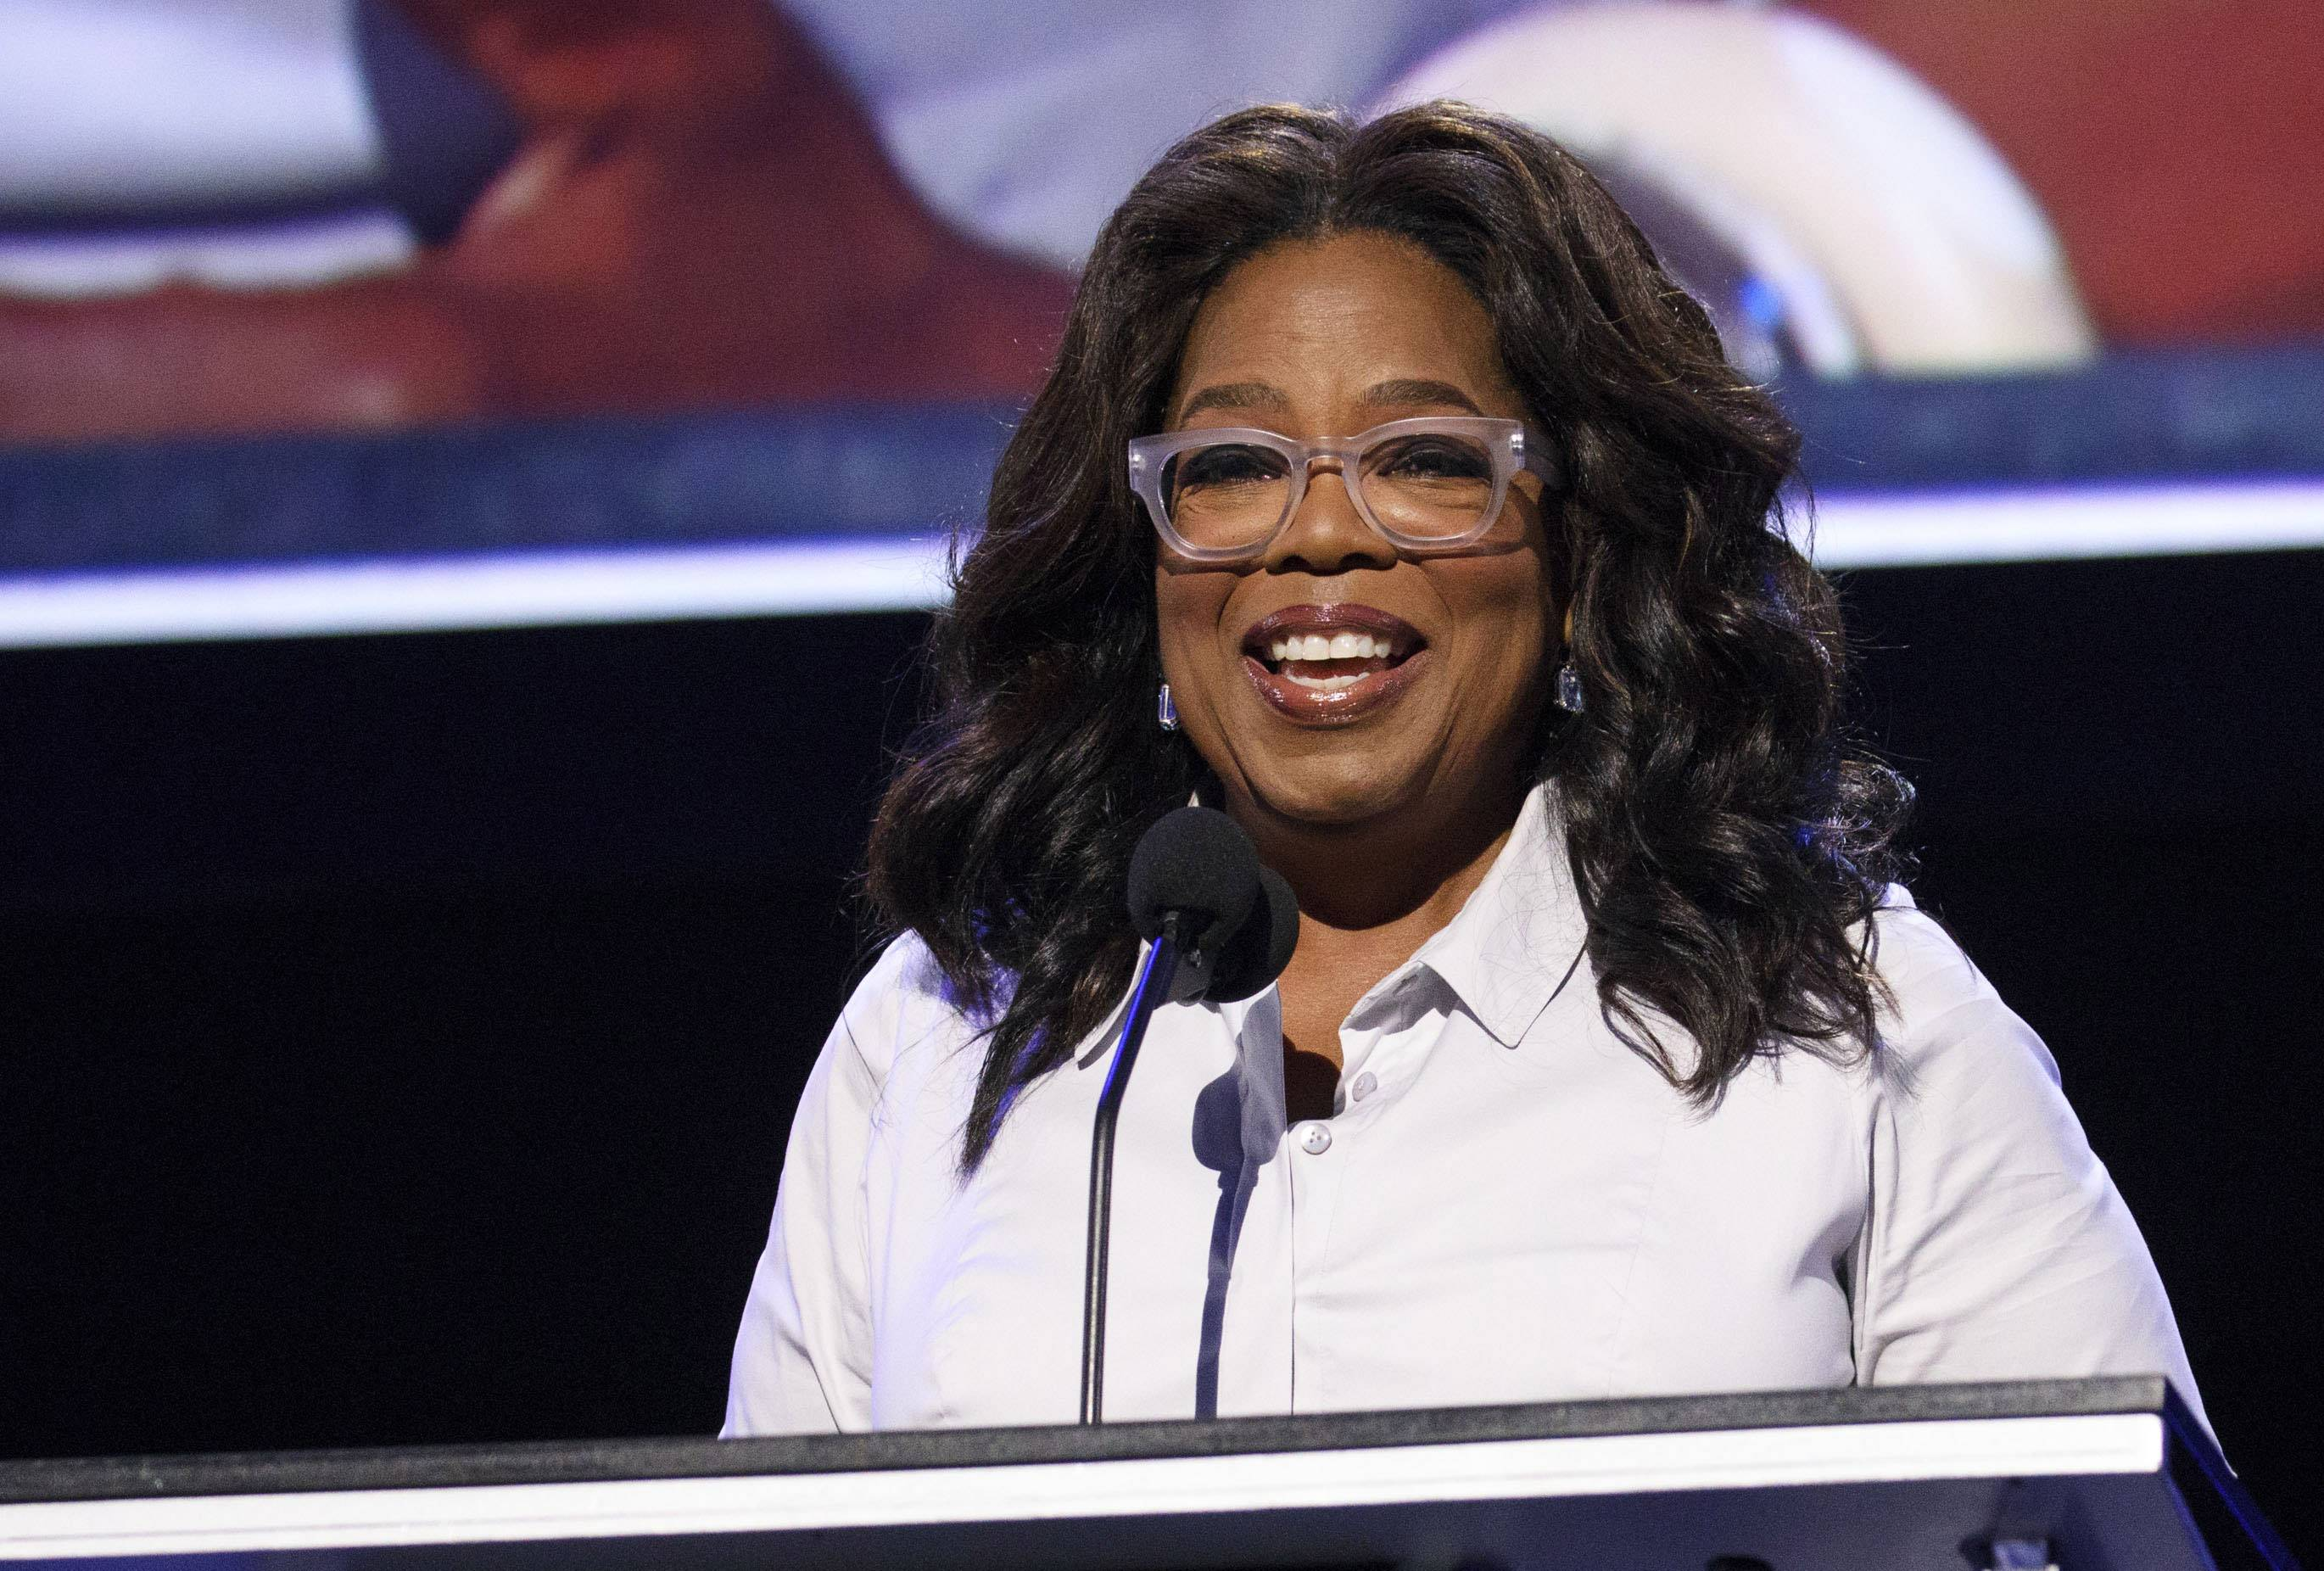 'Oprah for president' talk boosts Weight Watchers shares